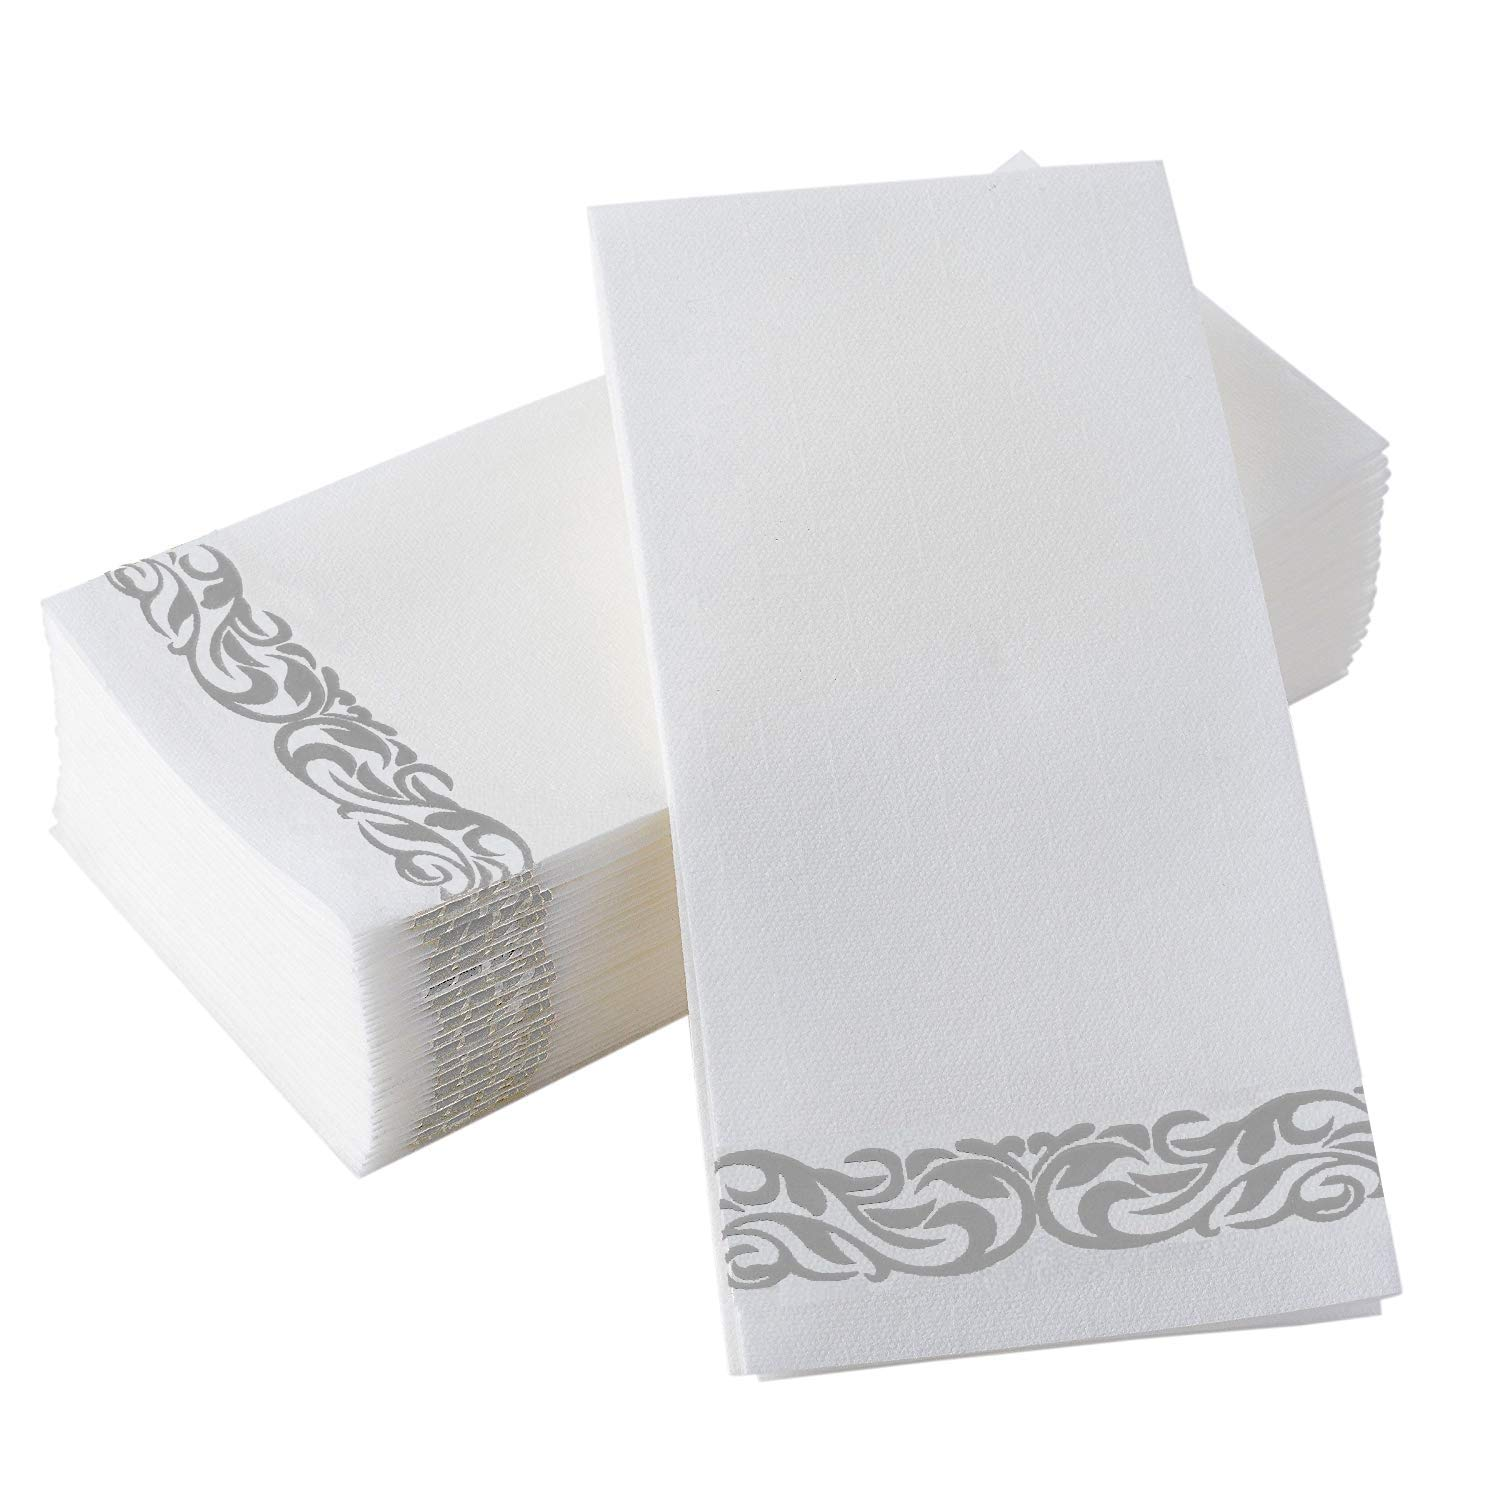 Gmark Decorative Linen-Feel Guest Towels – Silver Floral Premium Bathroom Hand Towels, Pack of 100-12x17 Inches for Dinner, Wedding and Cocktail Party Disposable Soft & Durable GM1059B